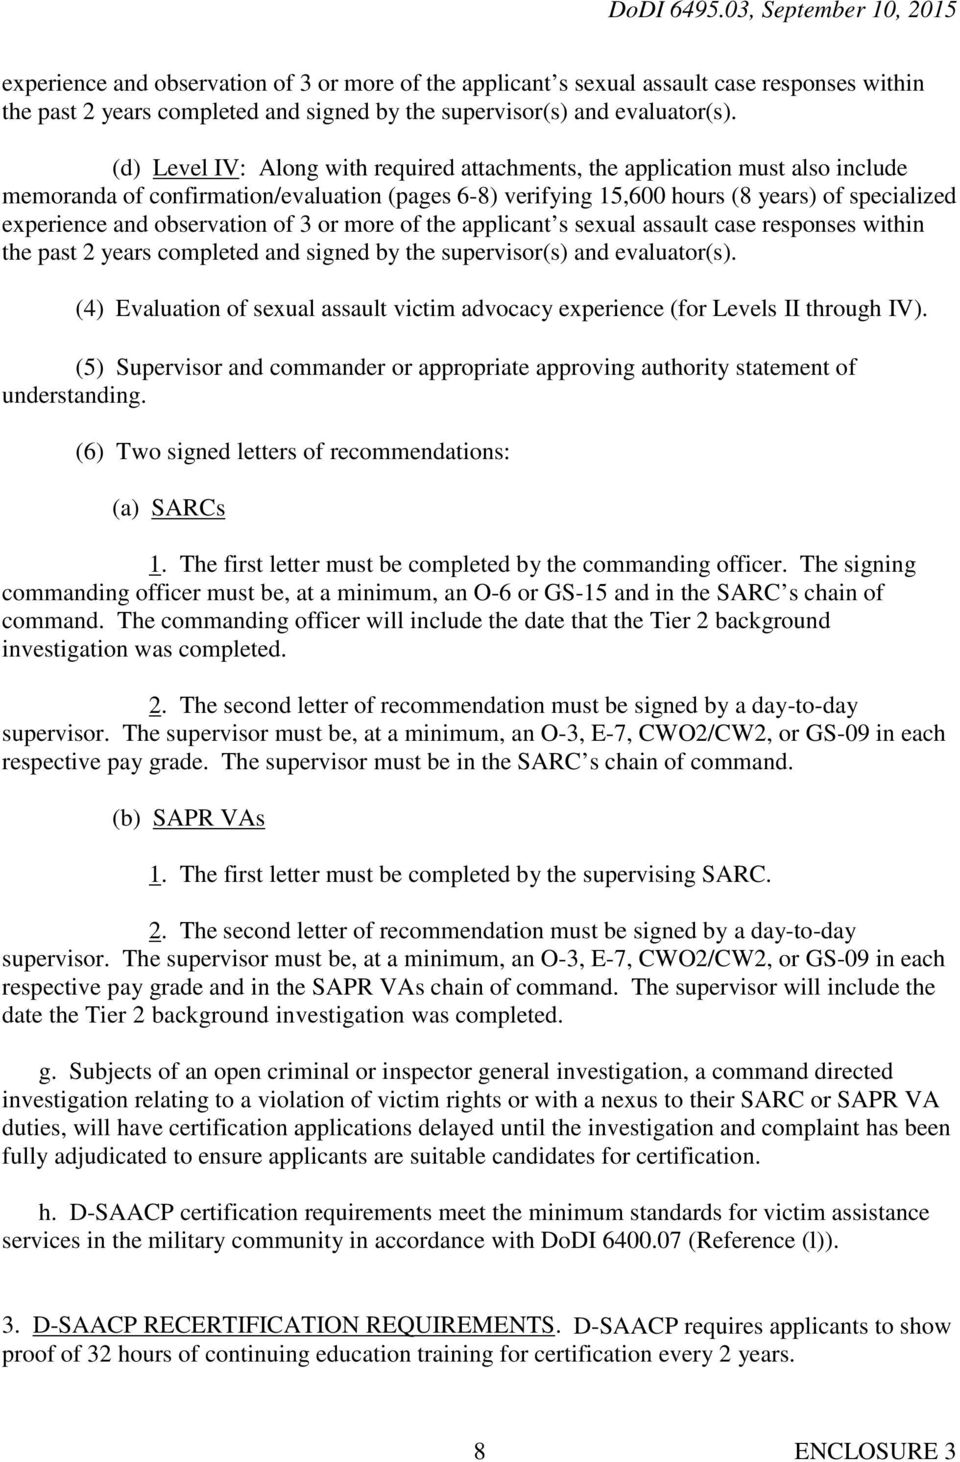 sexual assault victim advocacy experience (for Levels II through IV). (5) Supervisor and commander or appropriate approving authority statement of understanding.